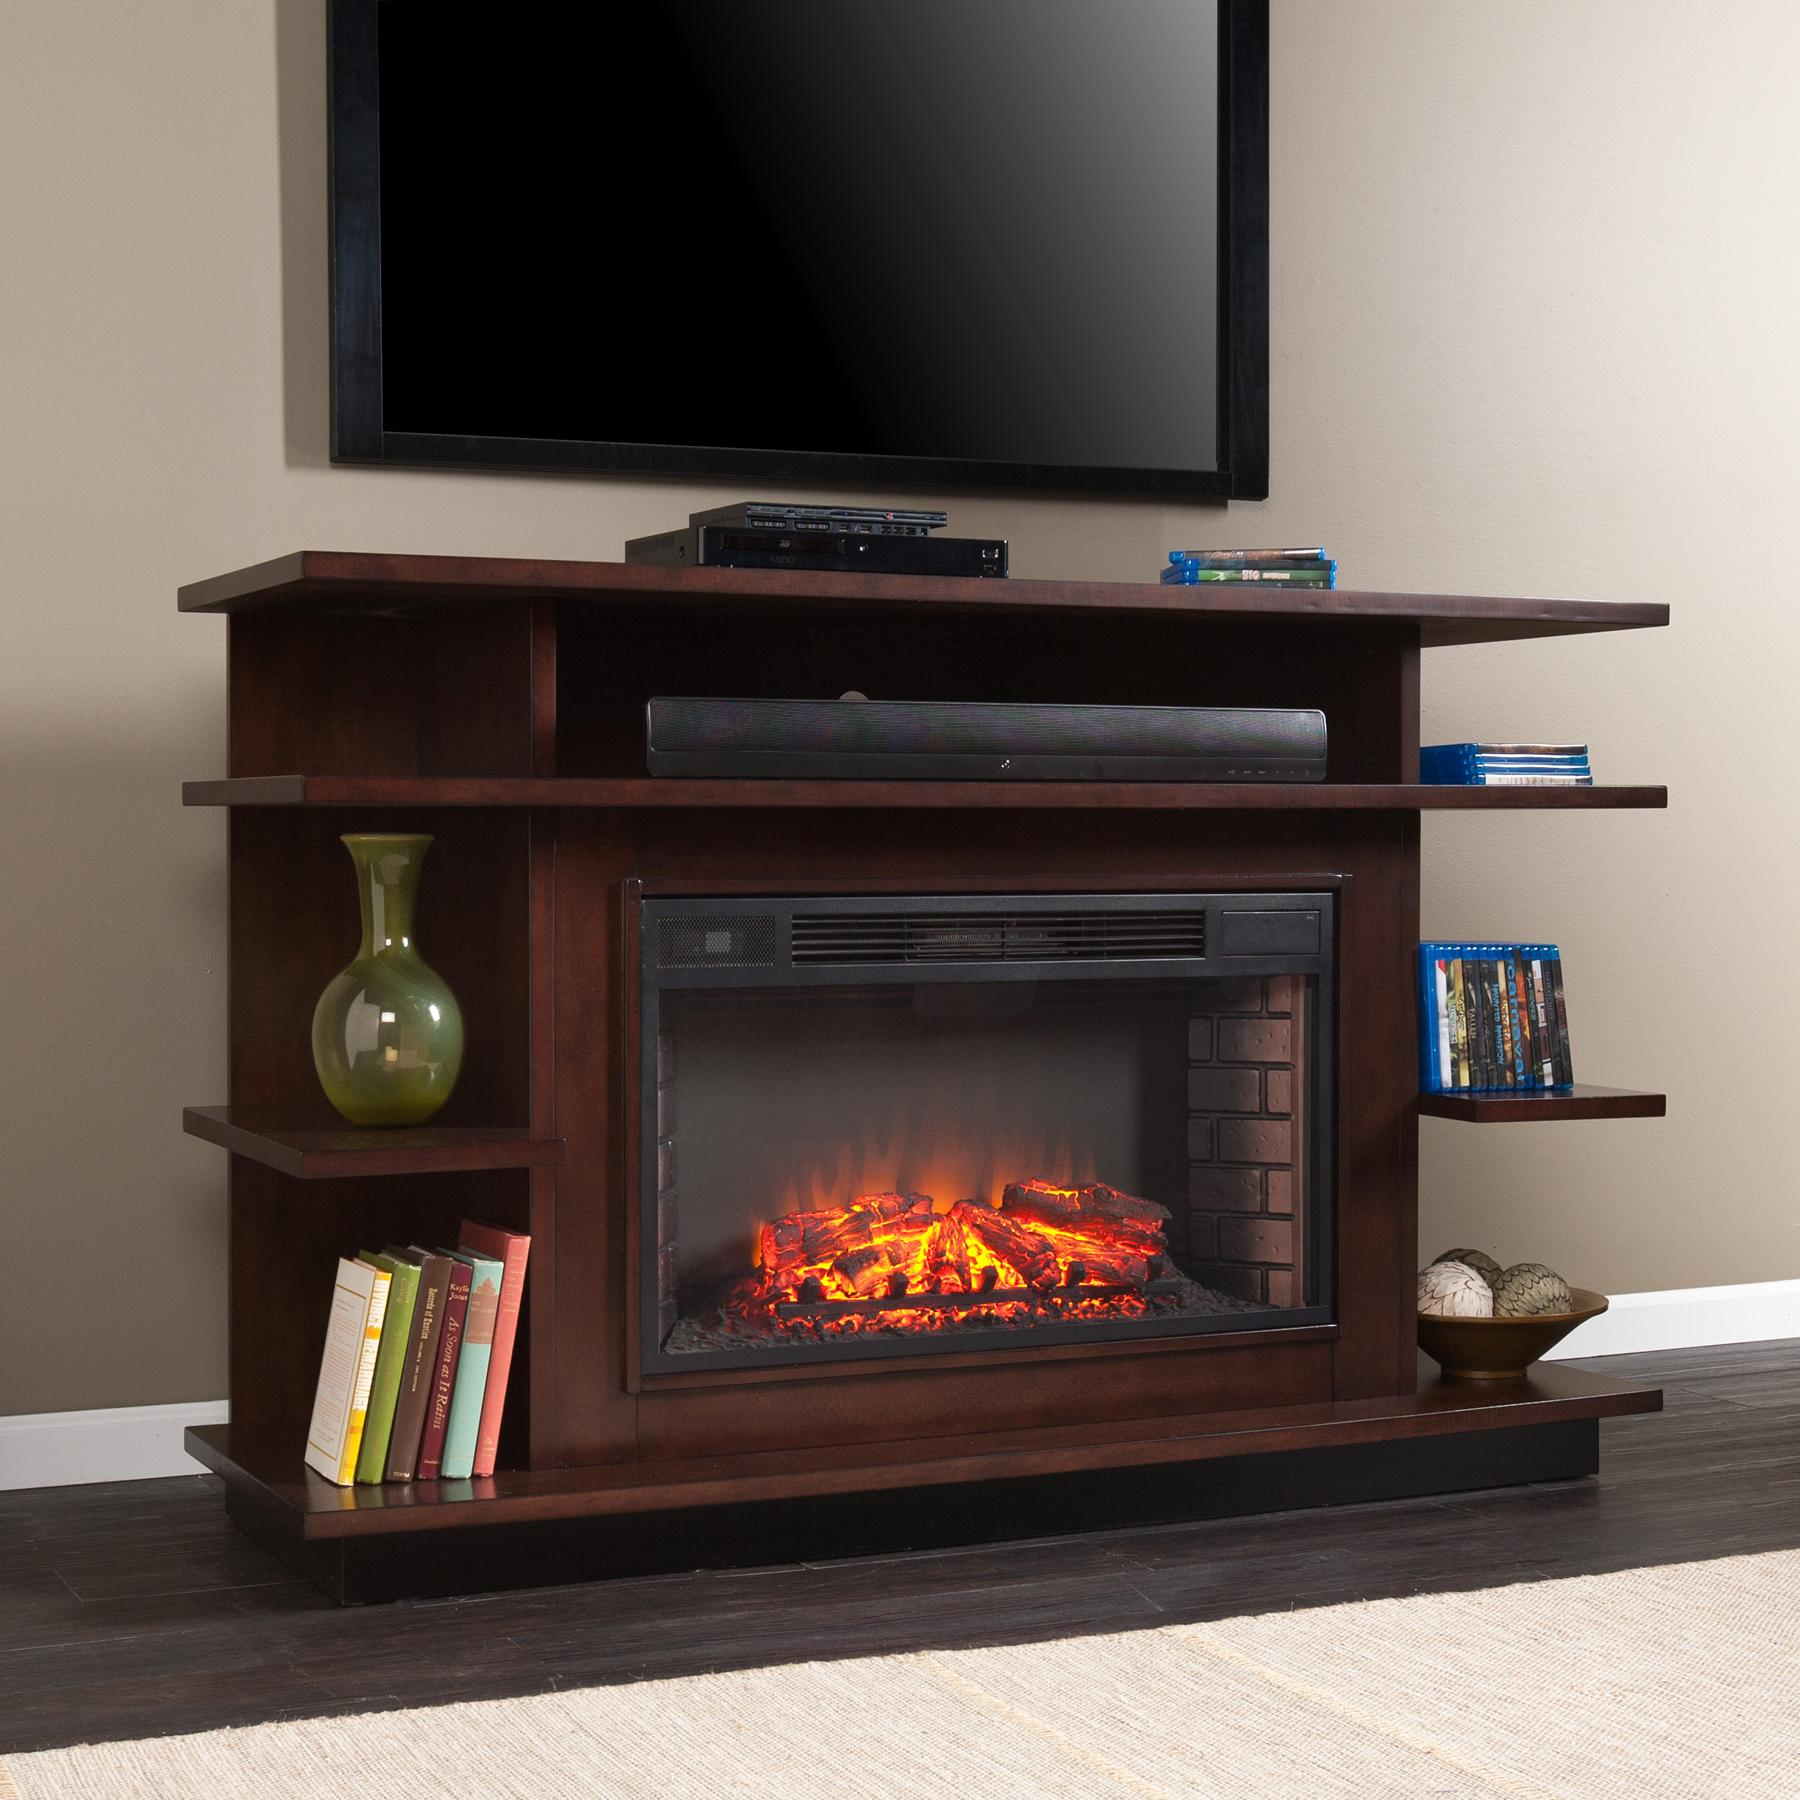 angletv caroline consoles media fireplaces dimplex fireplace en console electric products